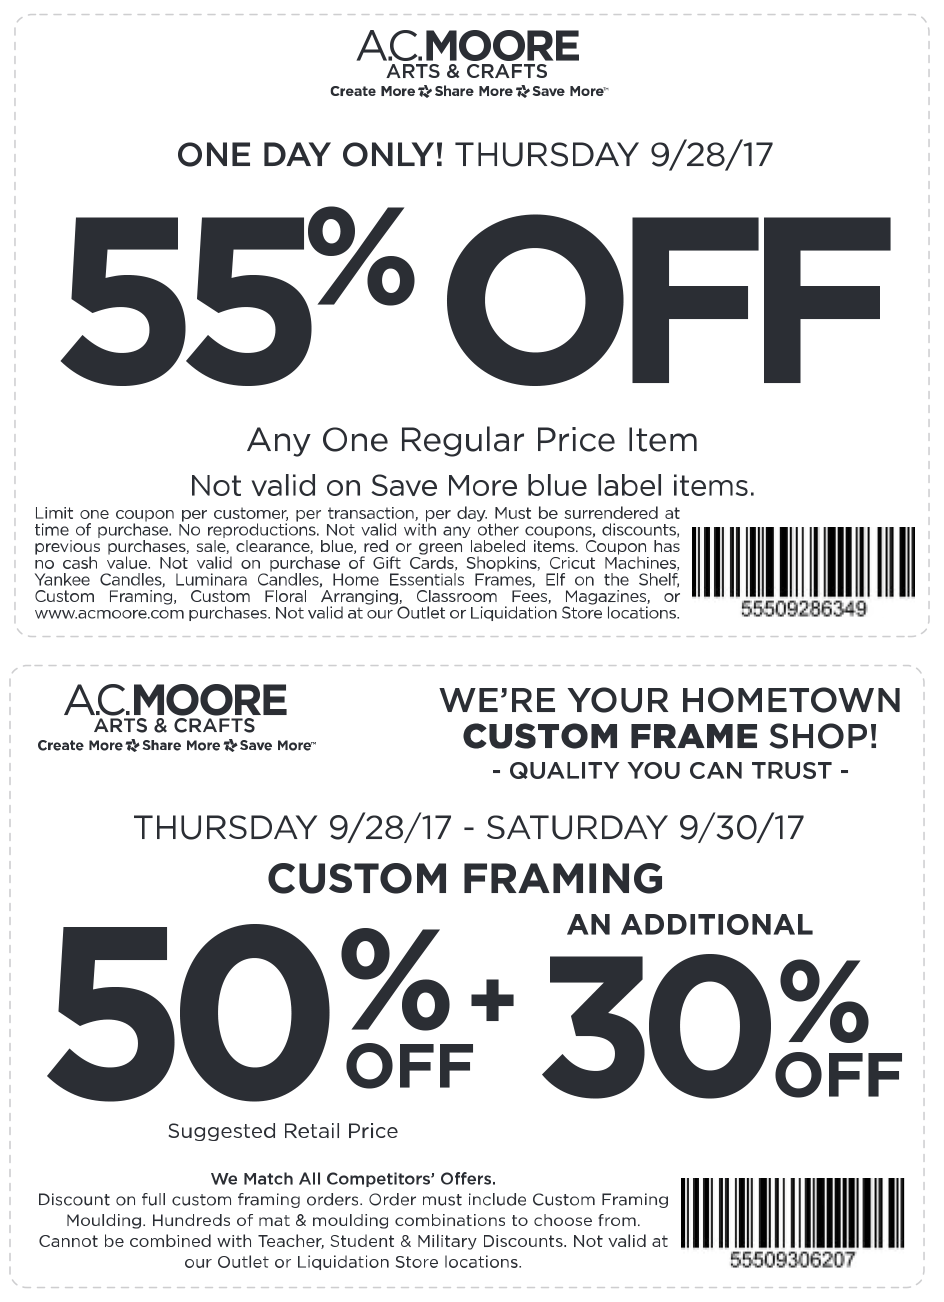 photo relating to Ac Moore Printable Coupons identify A.C. Moore Discount codes - 50% off a one solution at A.C. Moore